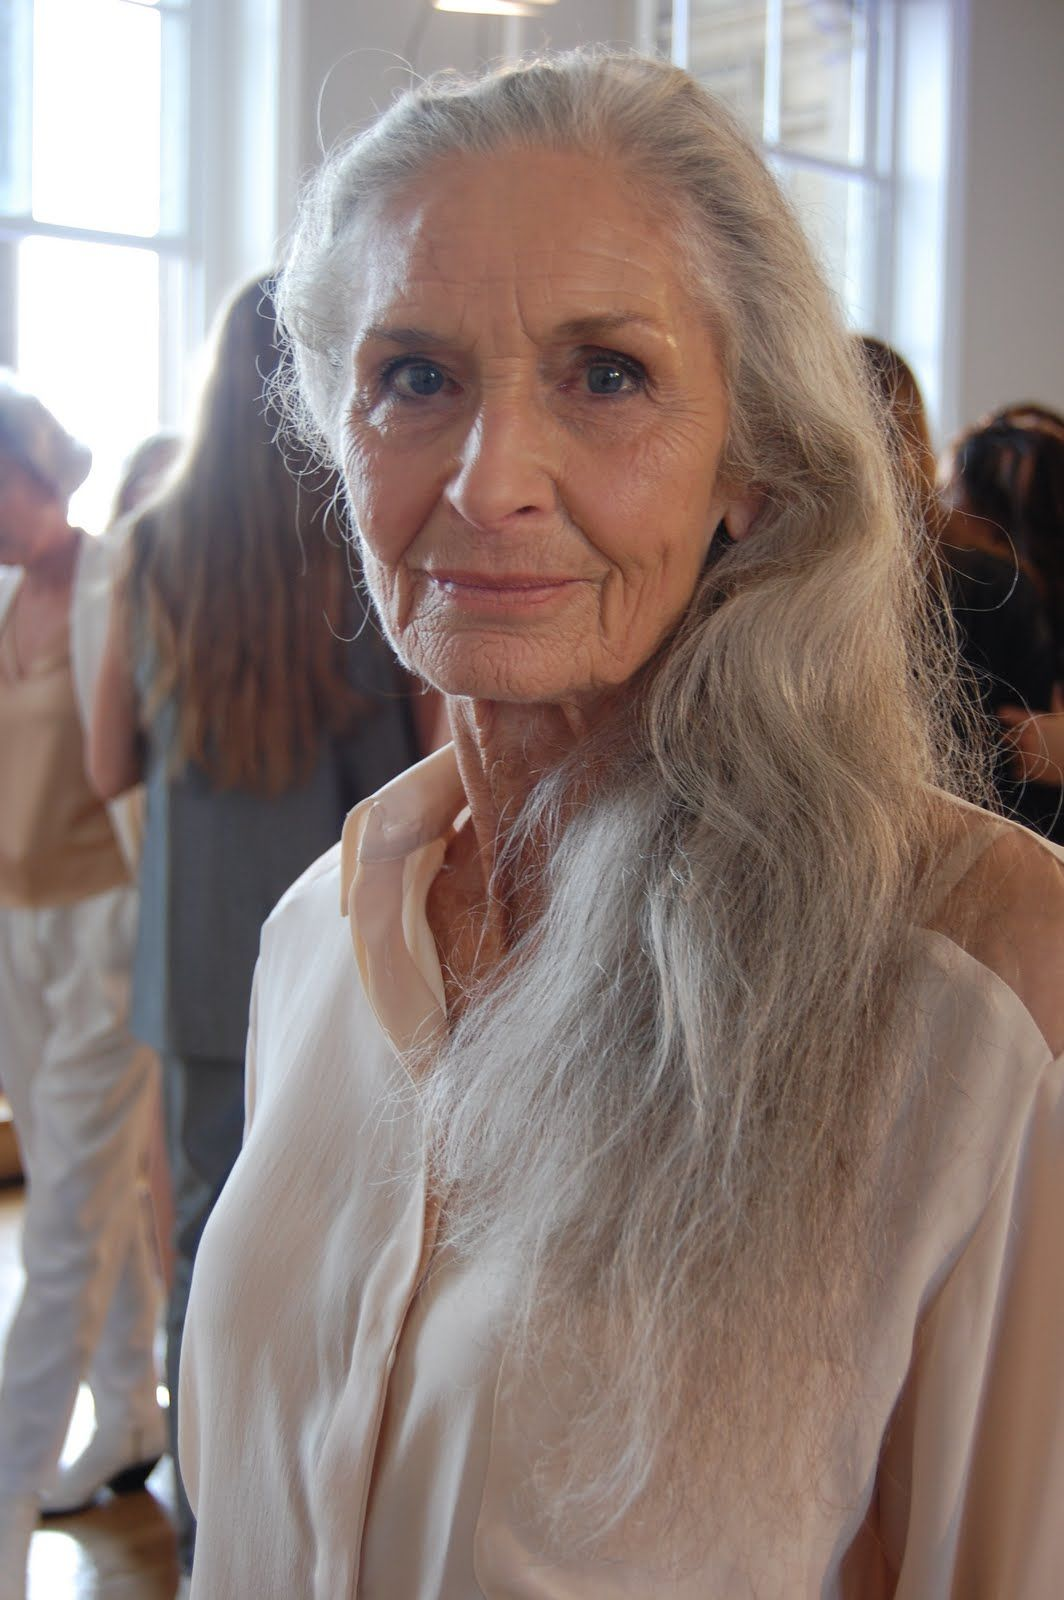 Great models: 83-year-old Daphne Self is involved in an advertising campaign, and 30-year-old Kate Bosworth is getting married on 08/19/2013 24